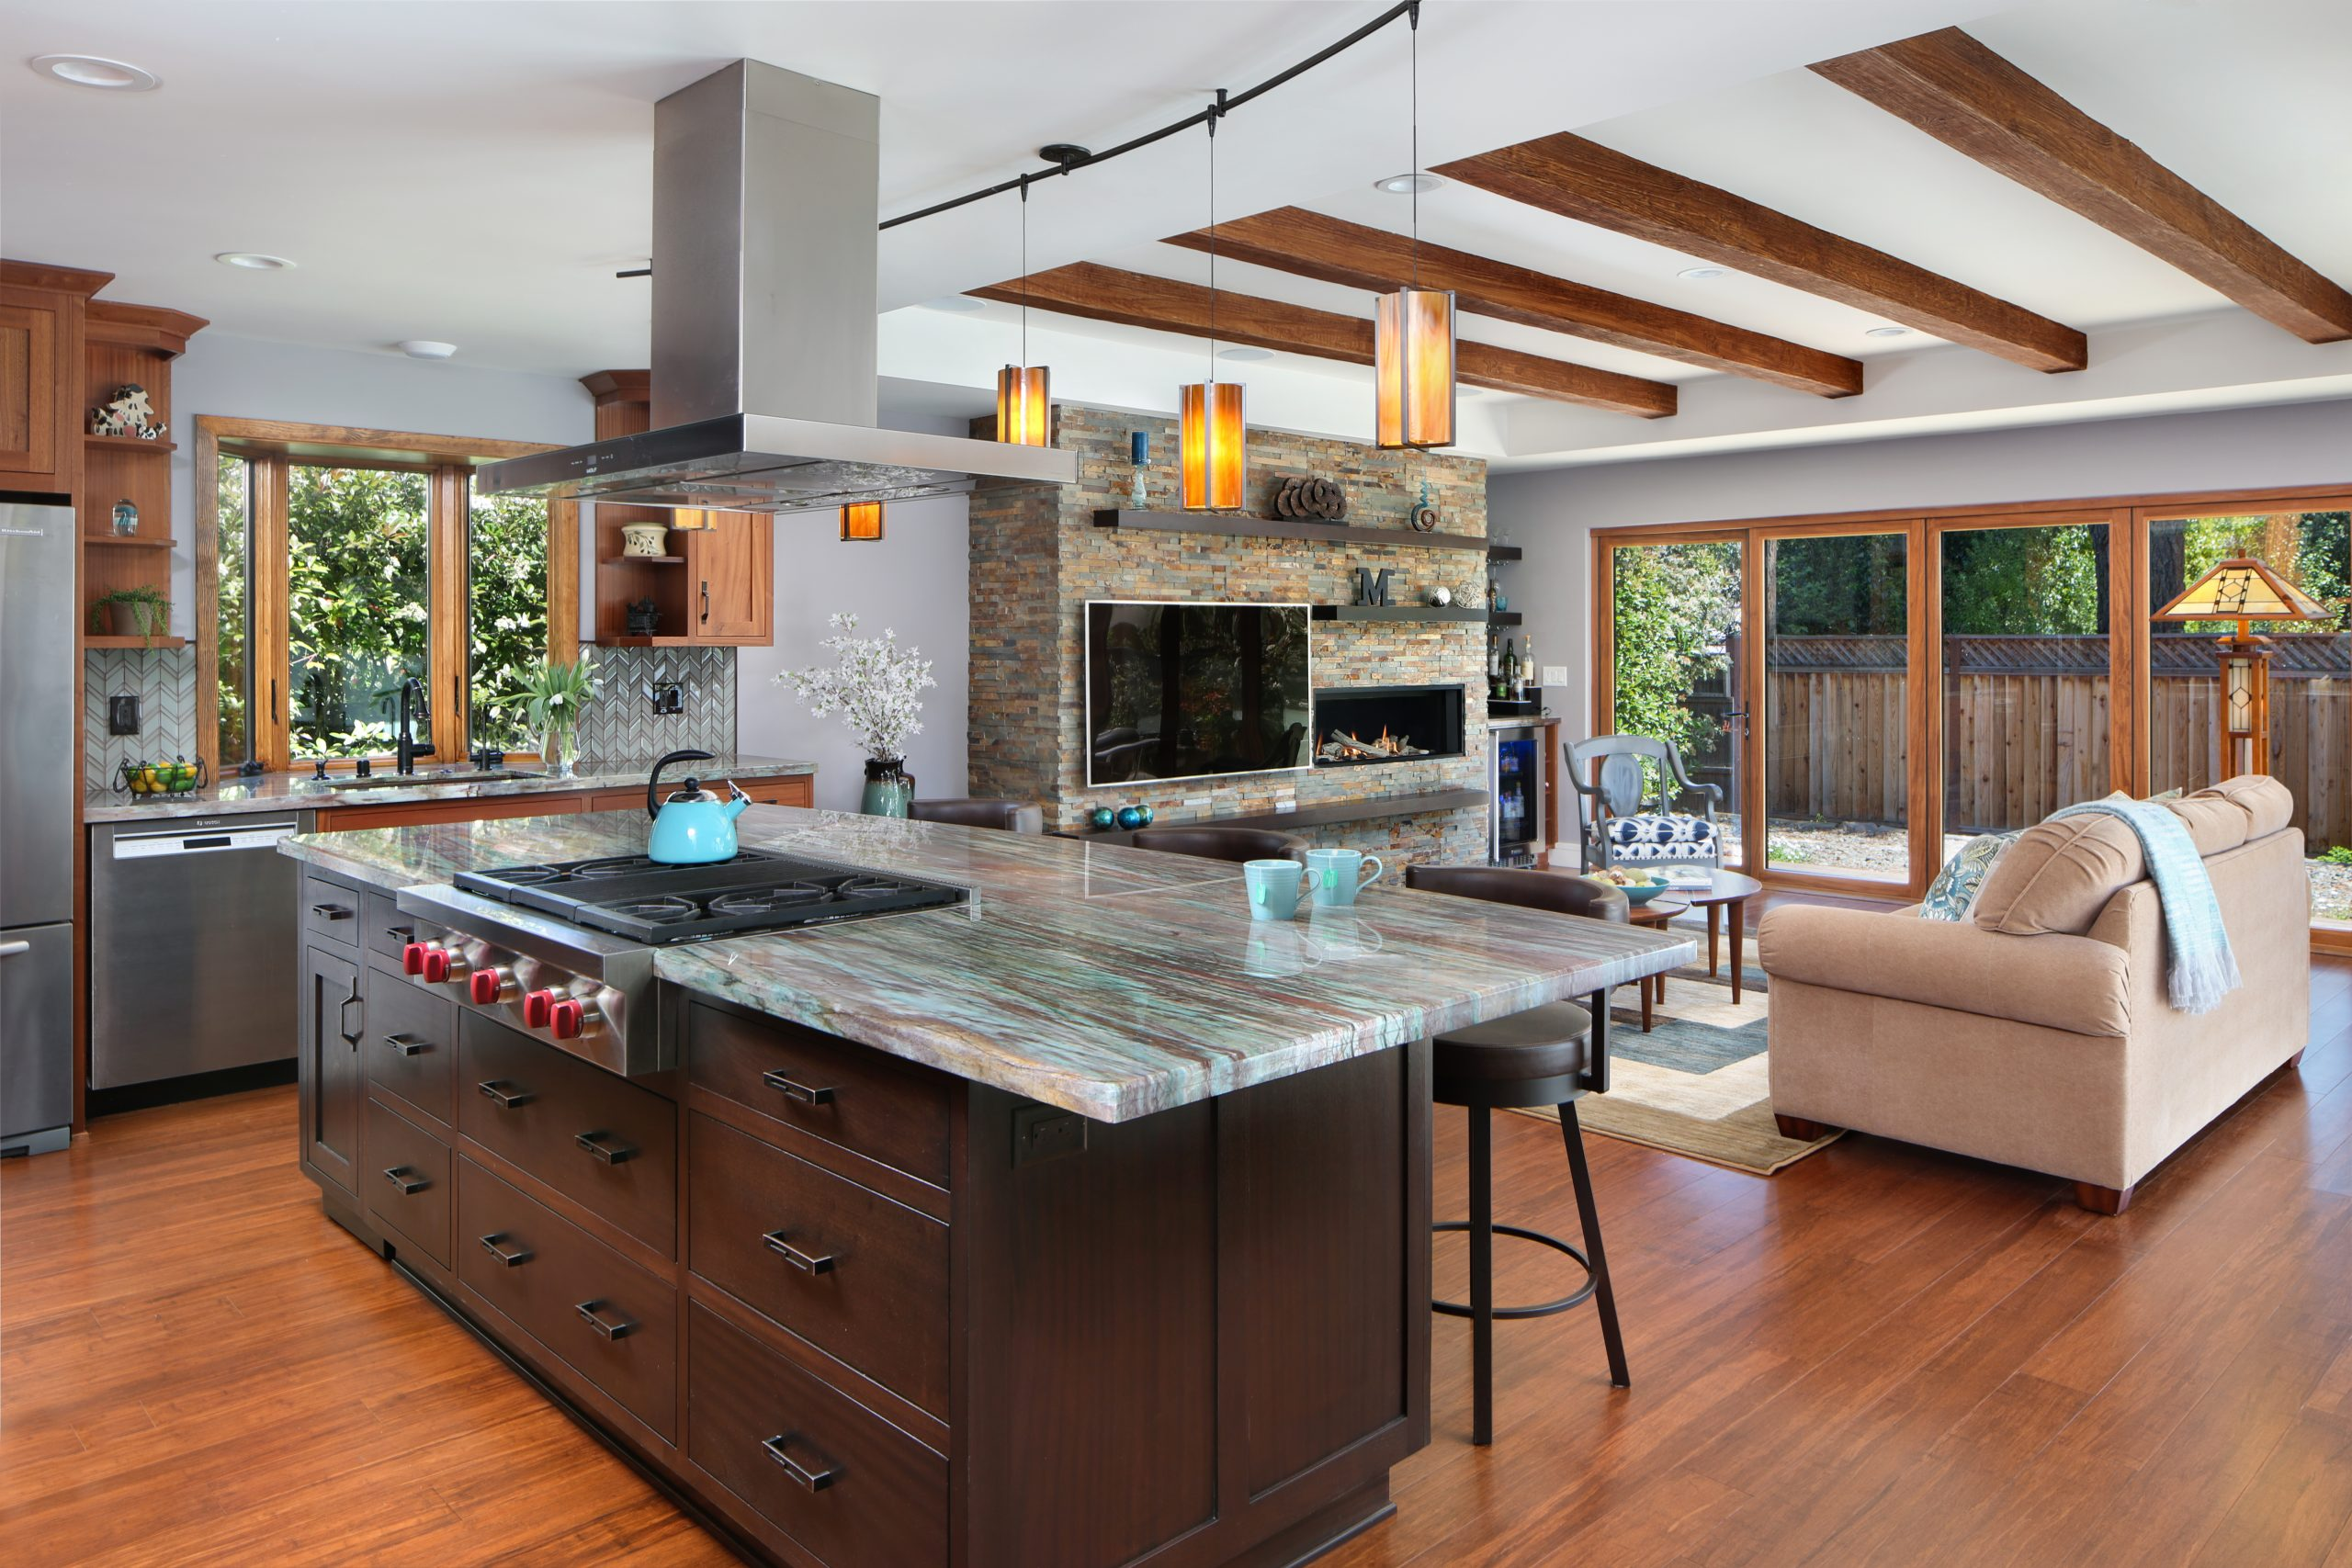 A kitchen island with granite counter tops and built in gas stove.